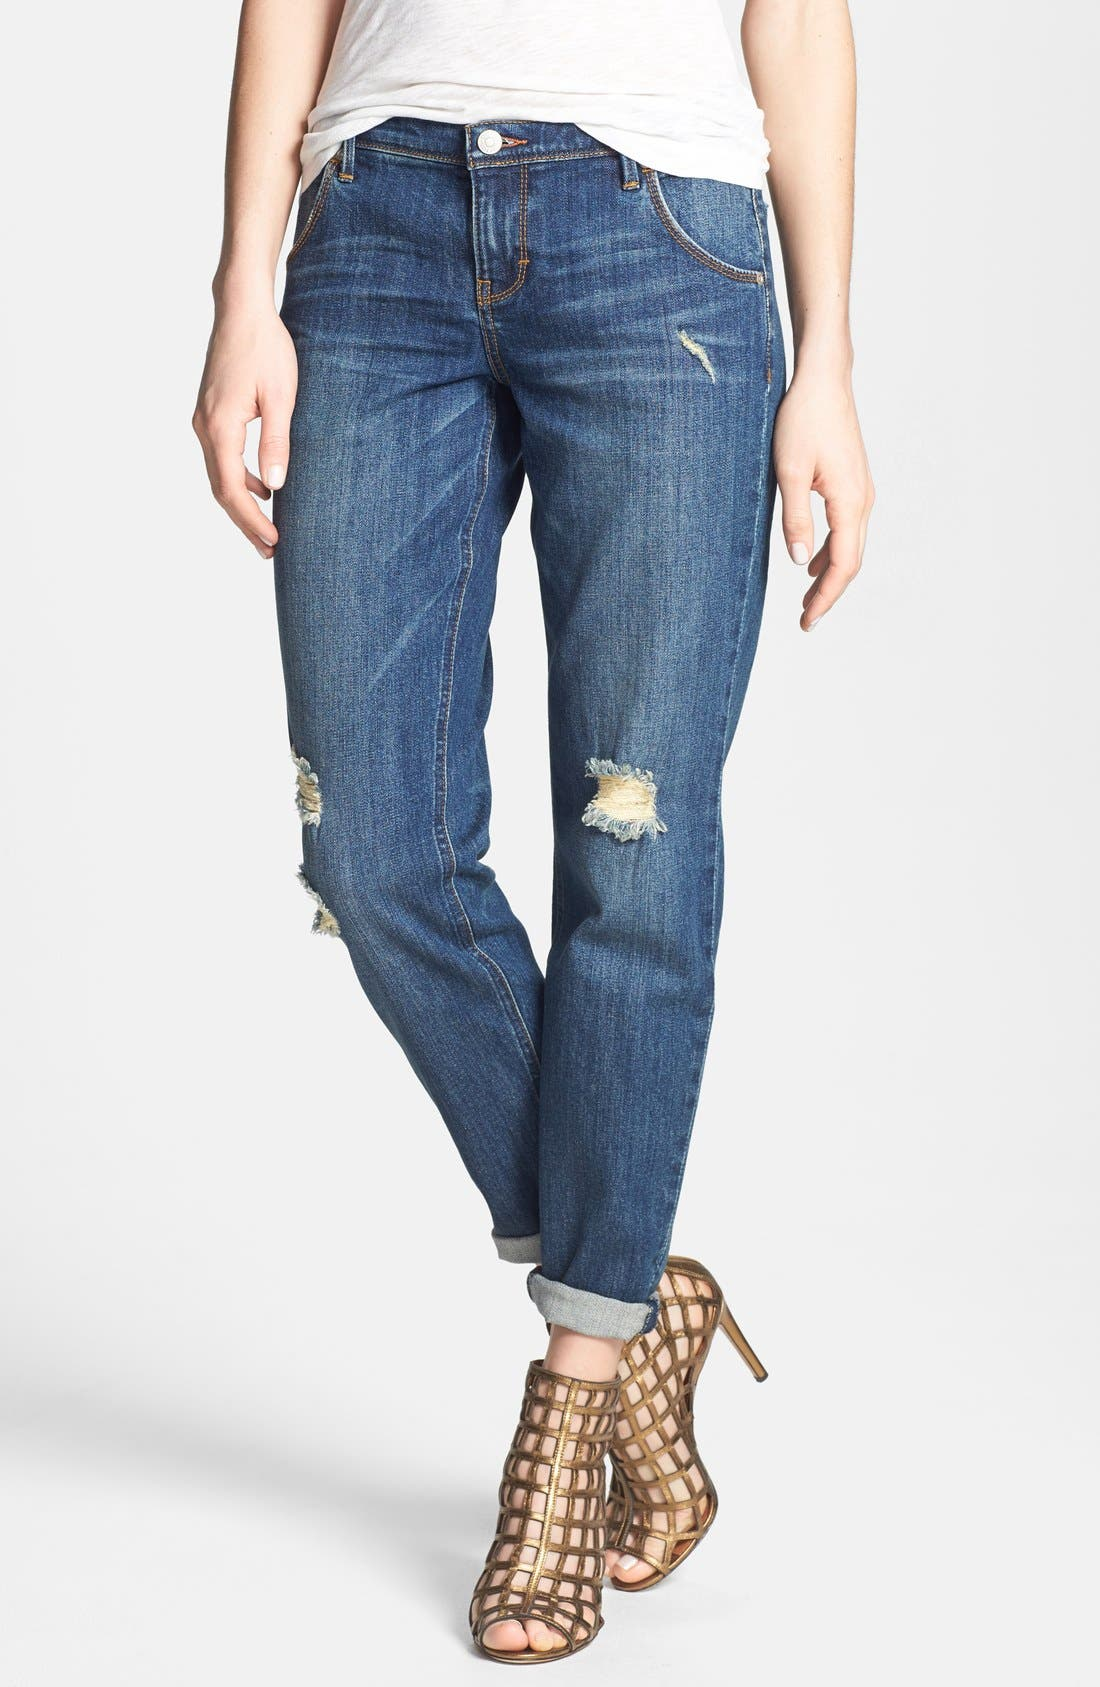 Alternate Image 1 Selected - Dittos 'Charlie' Destroyed Boyfriend Jeans (Lady Foot)